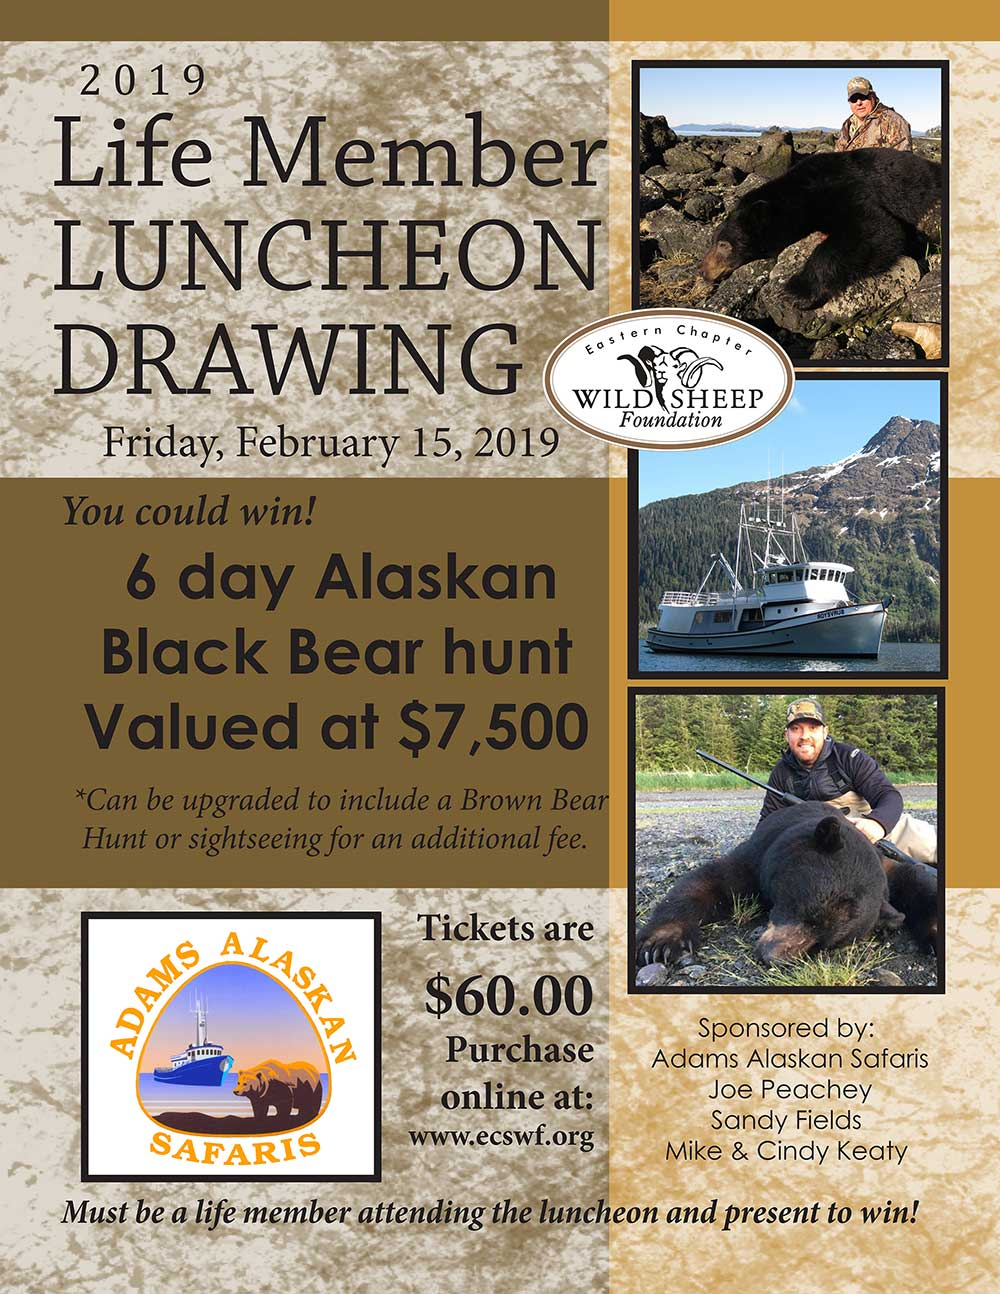 2019 Luncheon Lifetime Member Drawing